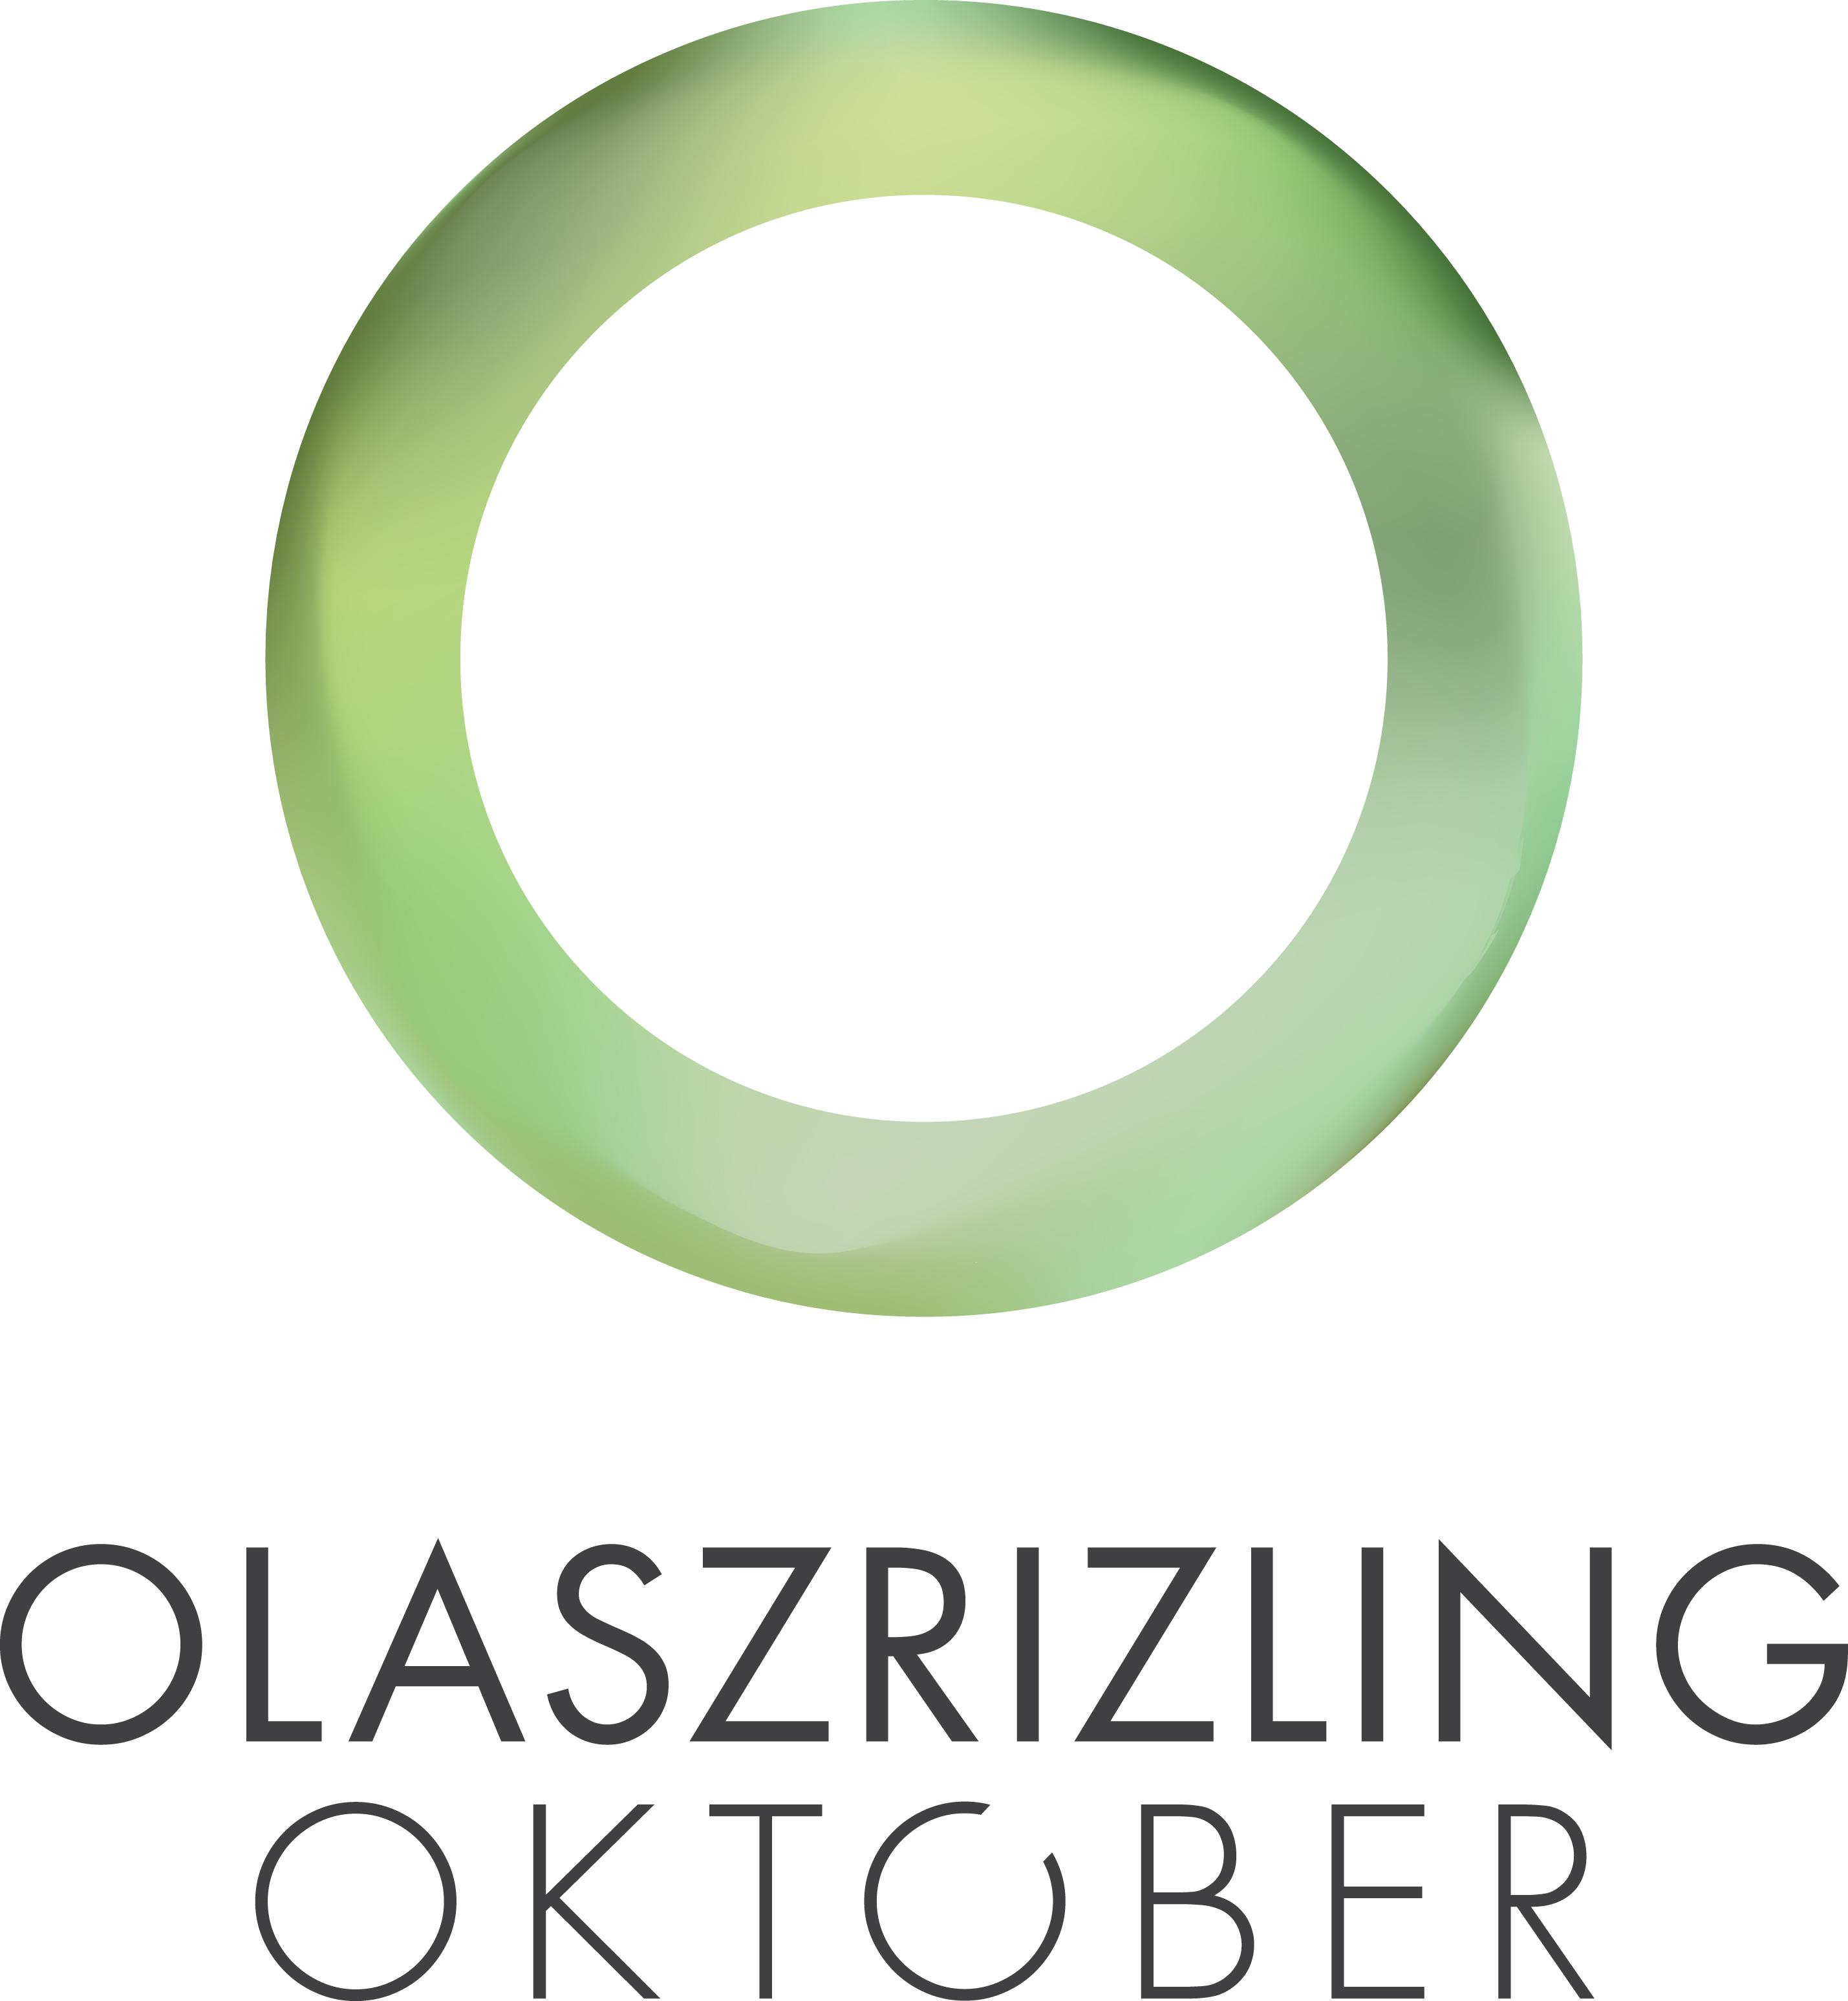 Invitation: Olaszrizling October First Time This Year